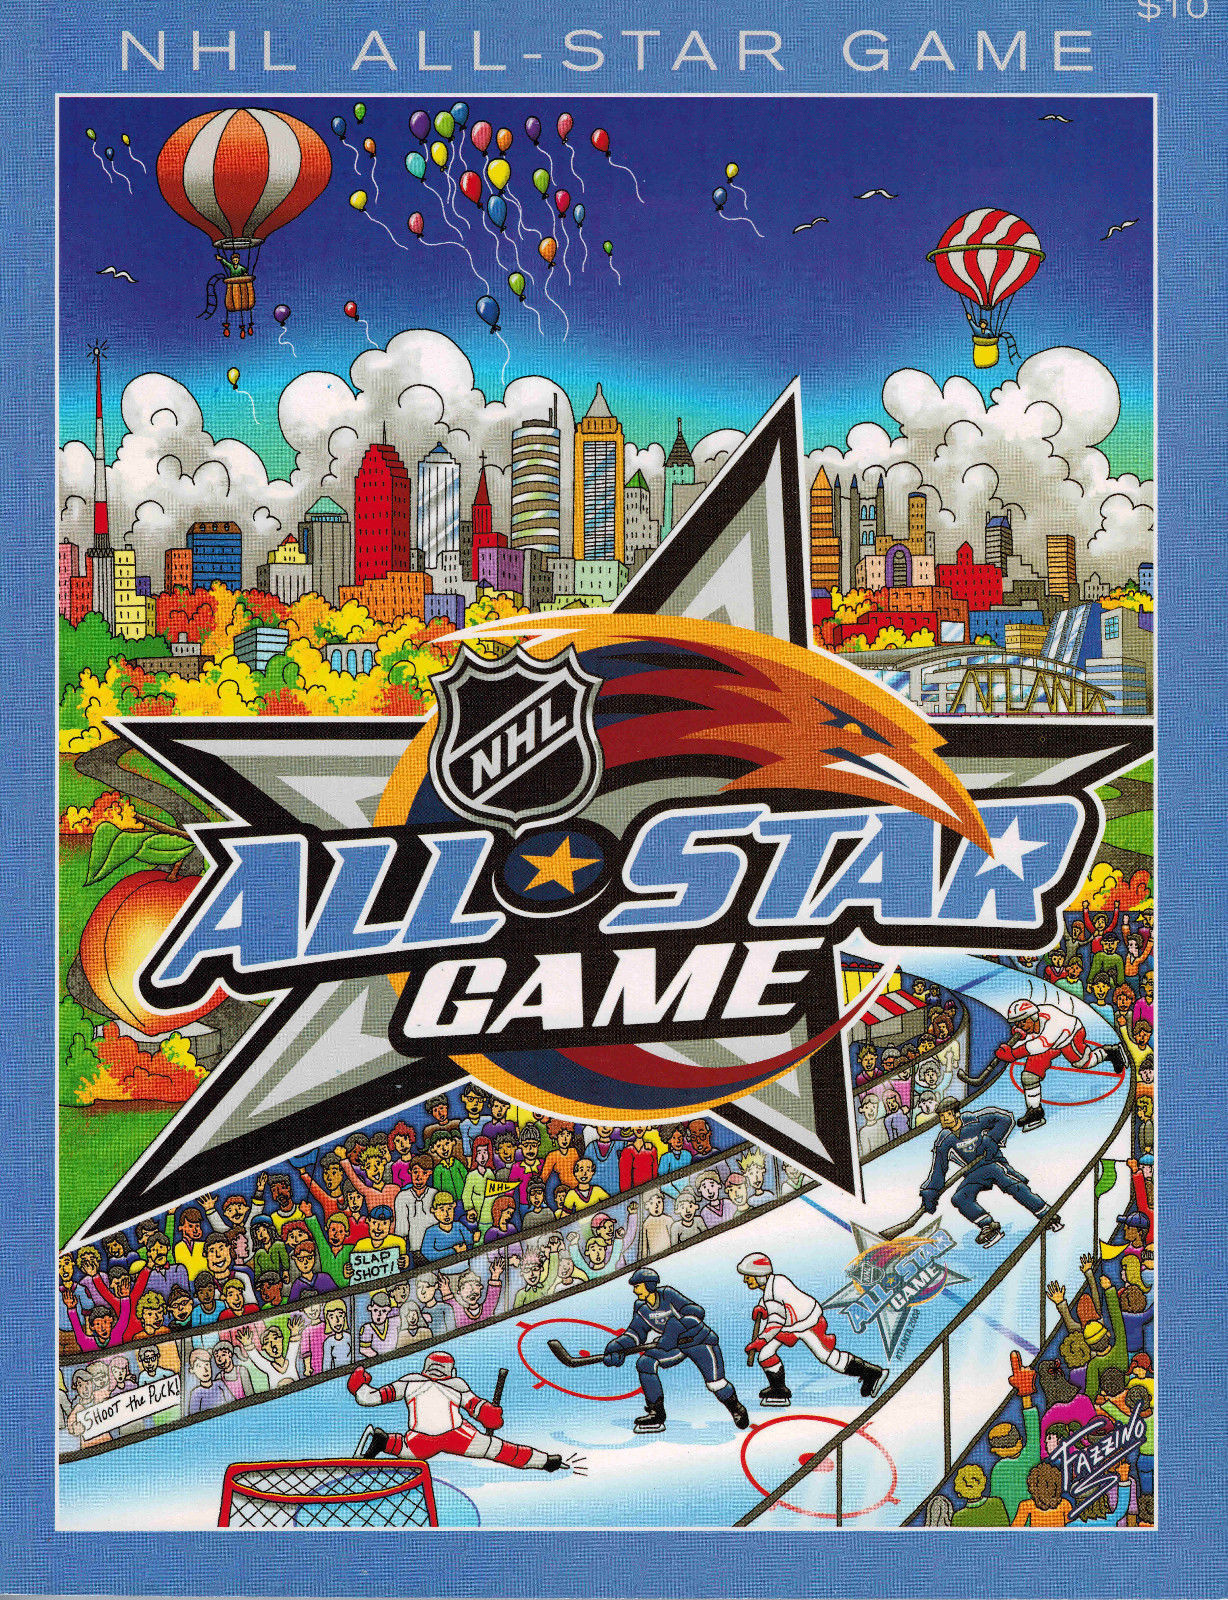 56th National Hockey League All Star Game Ice Hockey Wiki Fandom